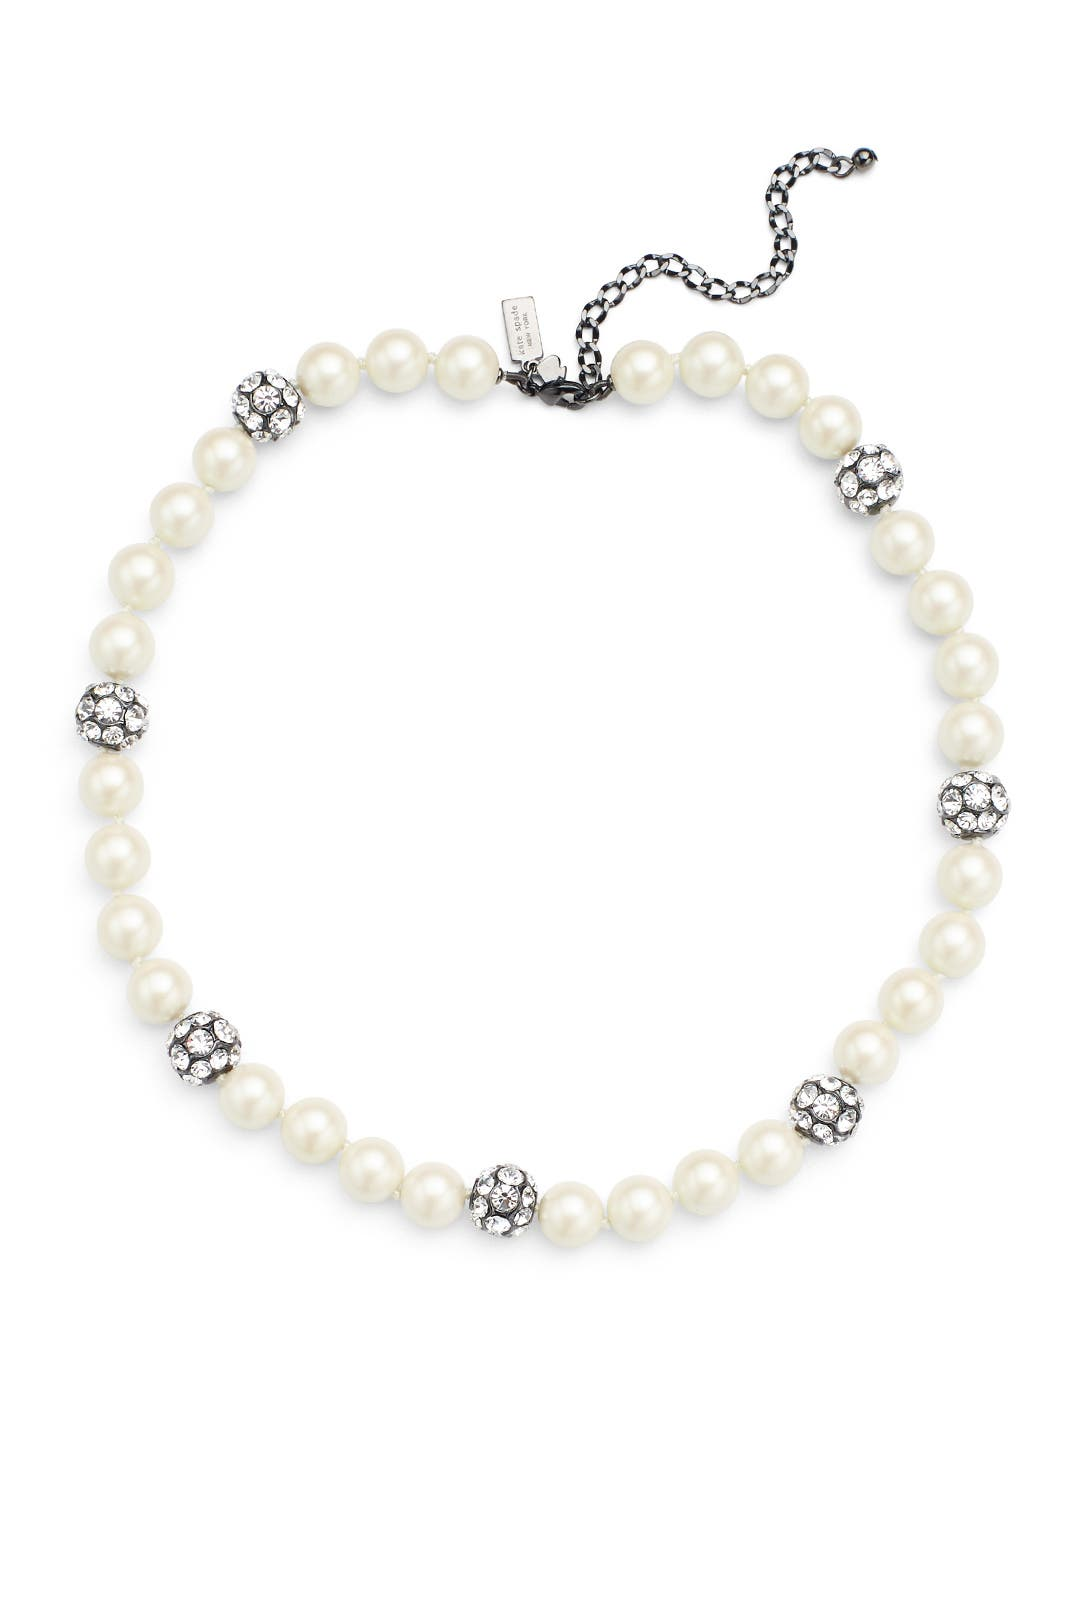 $3500 More Details · Kate Spade New York Accessories Party Pearls Necklace